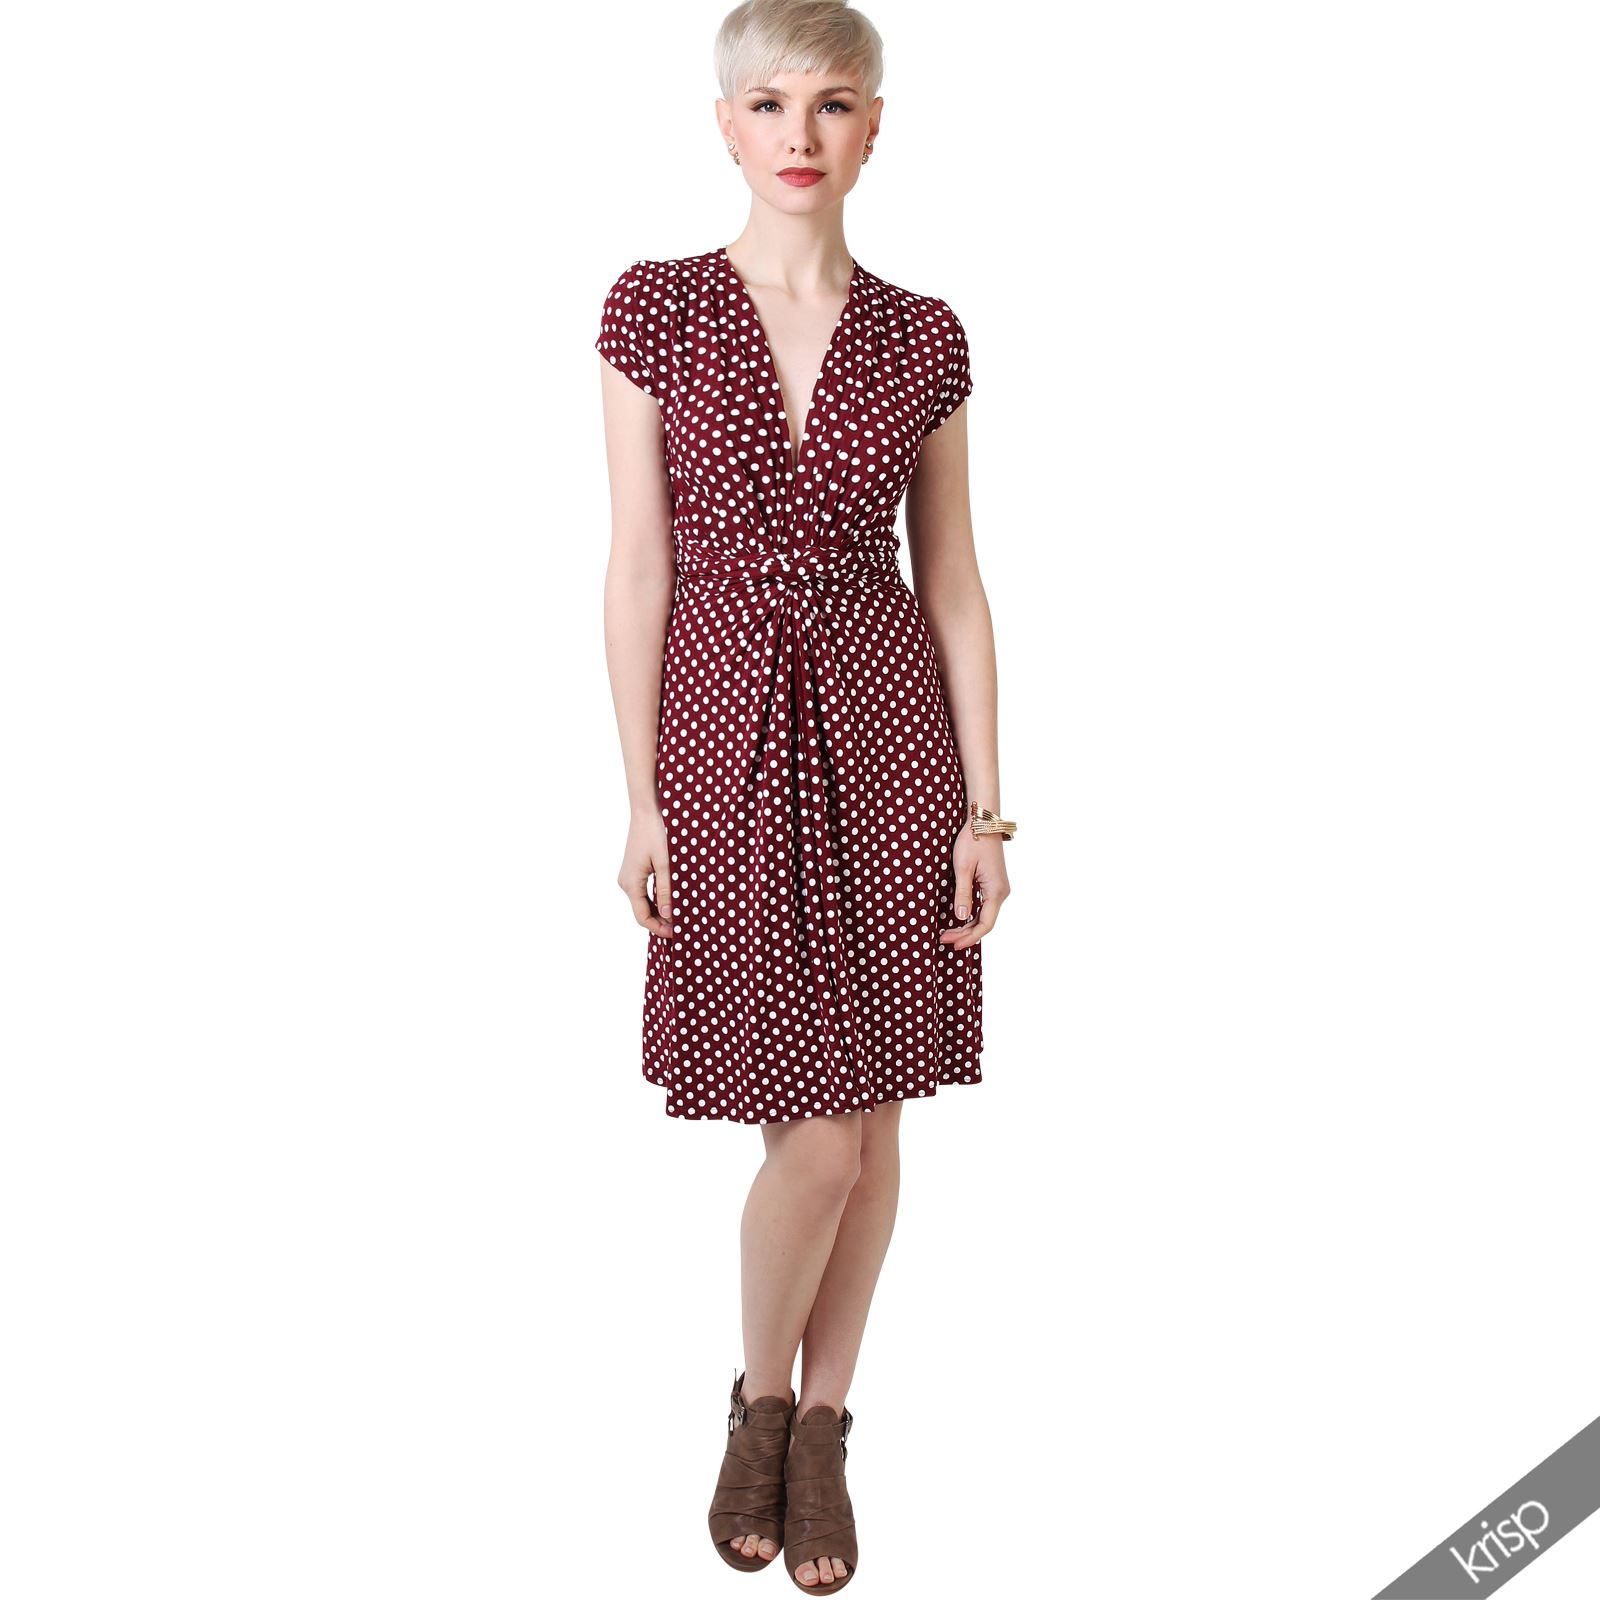 Womens-Polka-Dot-Retro-Dress-Pleated-Skirt-Wrap-Mini-V-Neck-Top-Swing-Party thumbnail 36